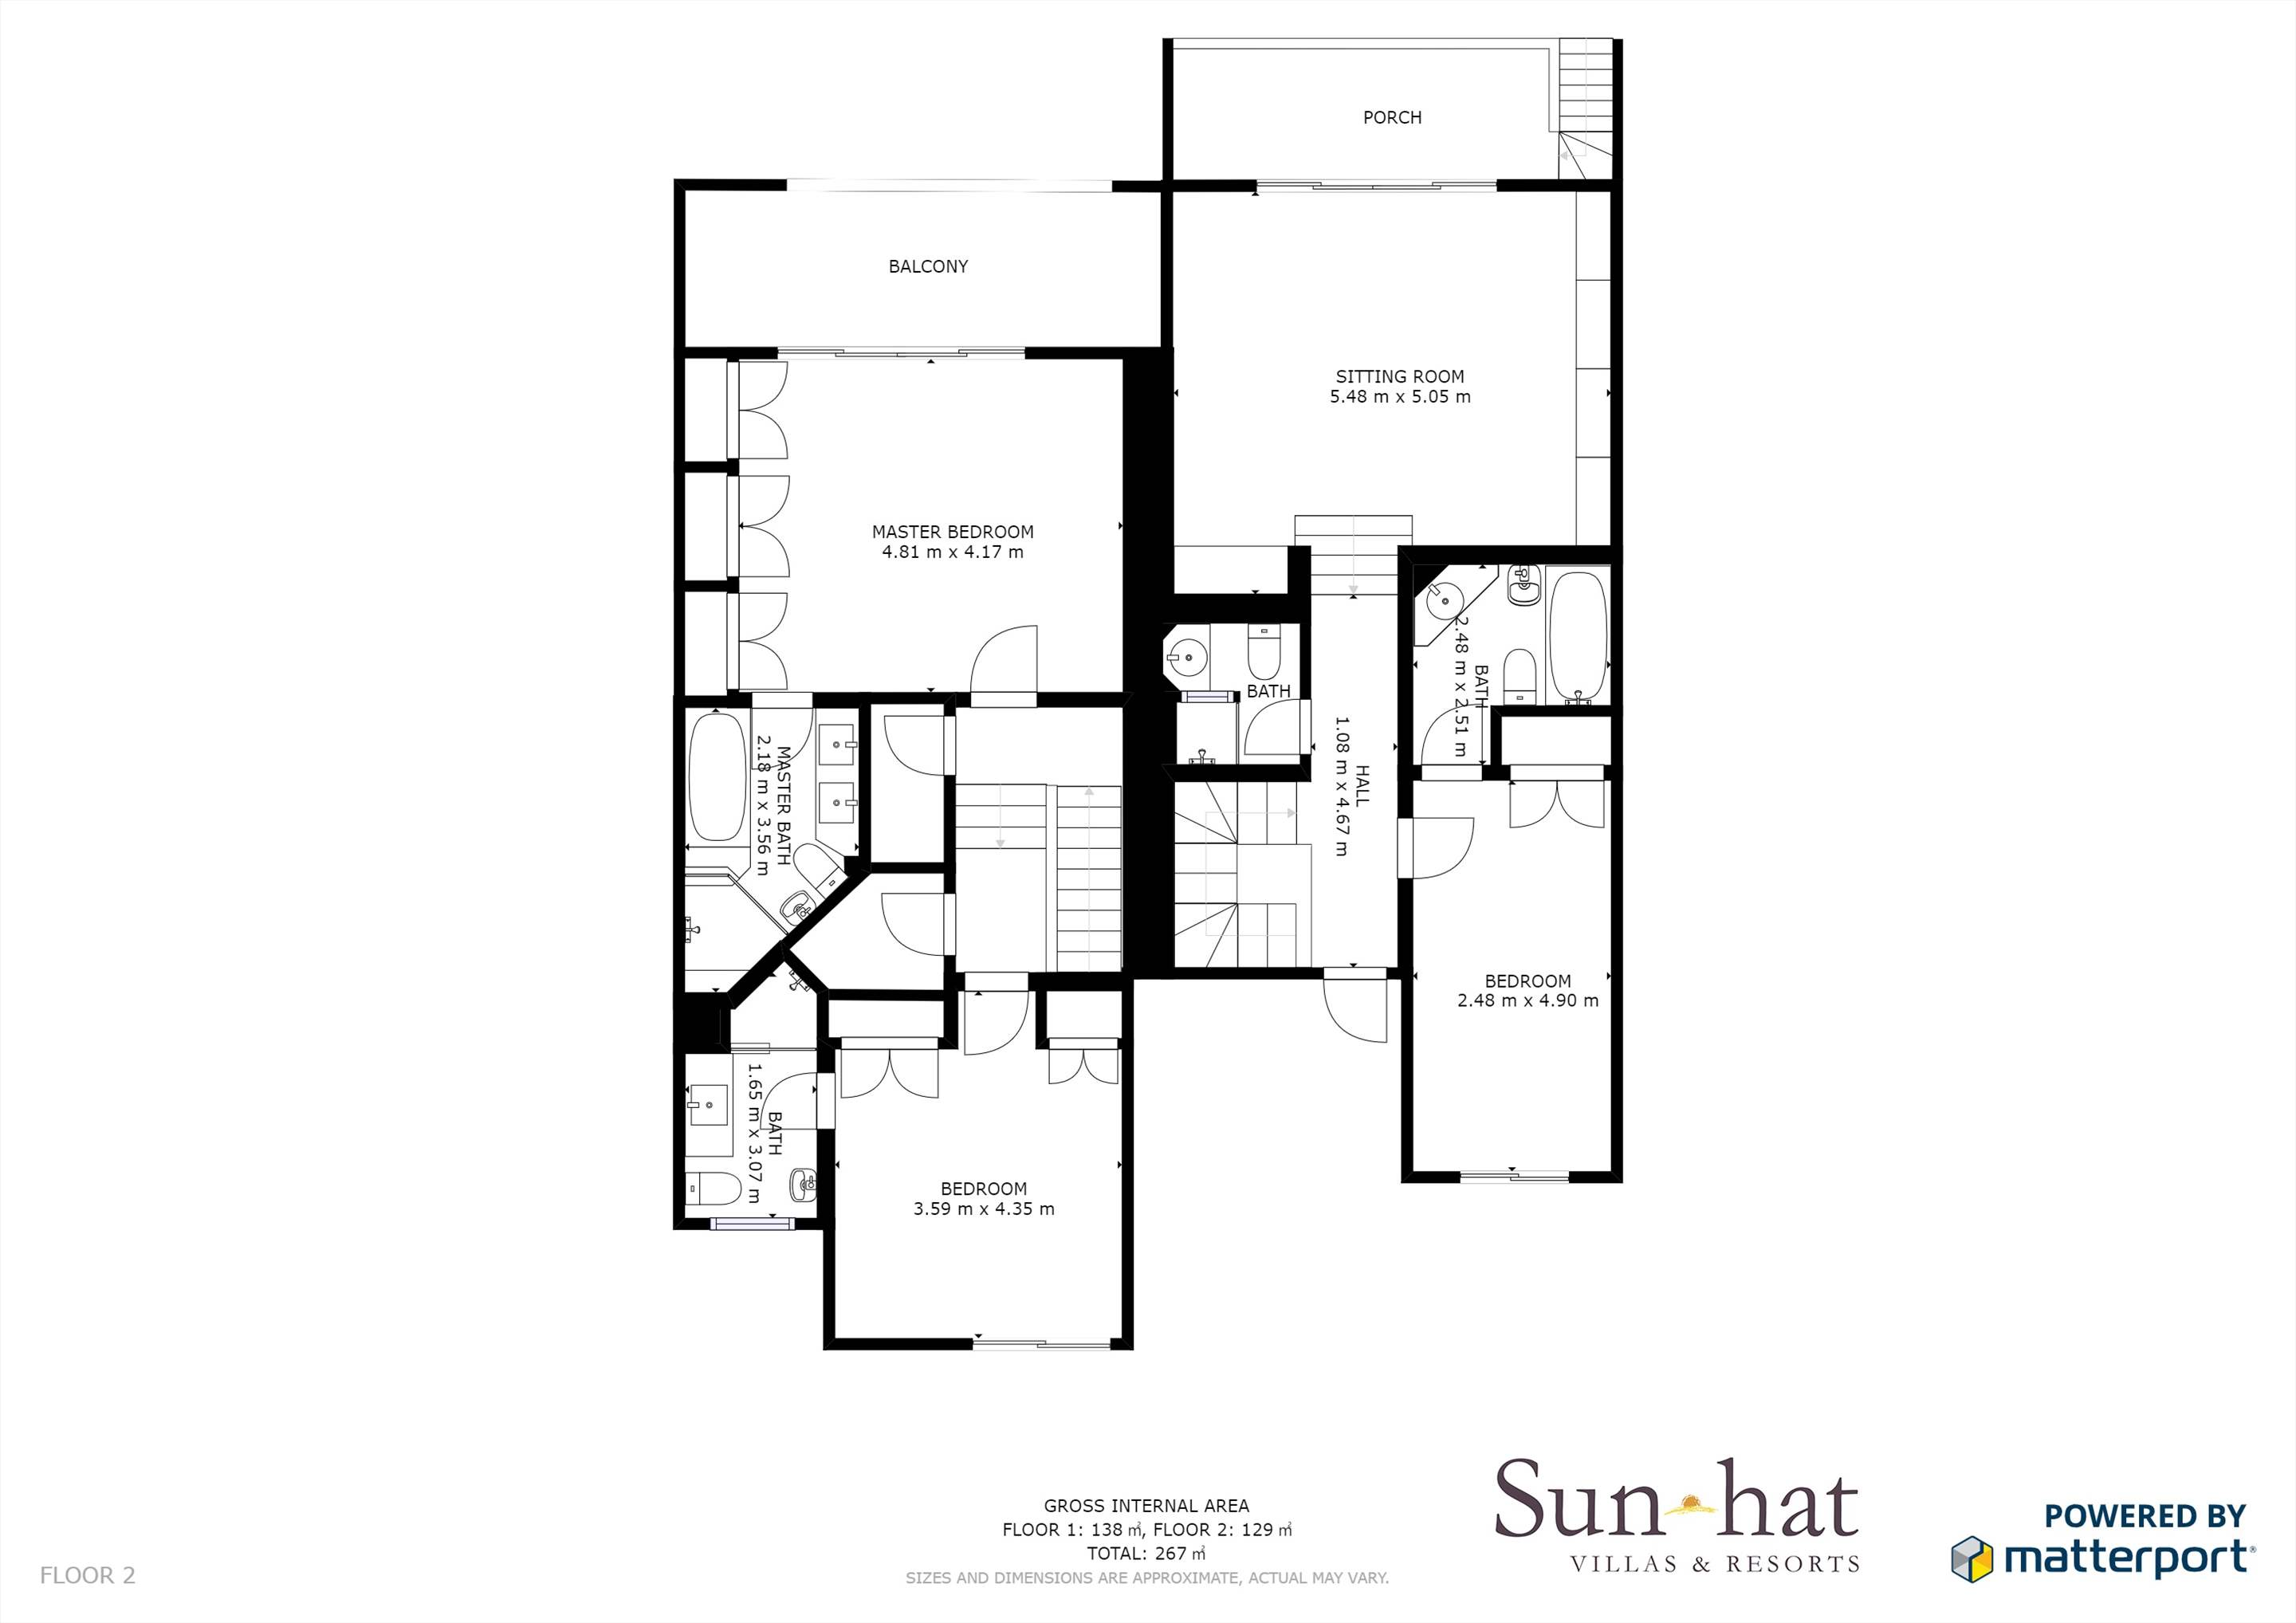 Villas Louisa, 4 Bedroom Floorplan #2